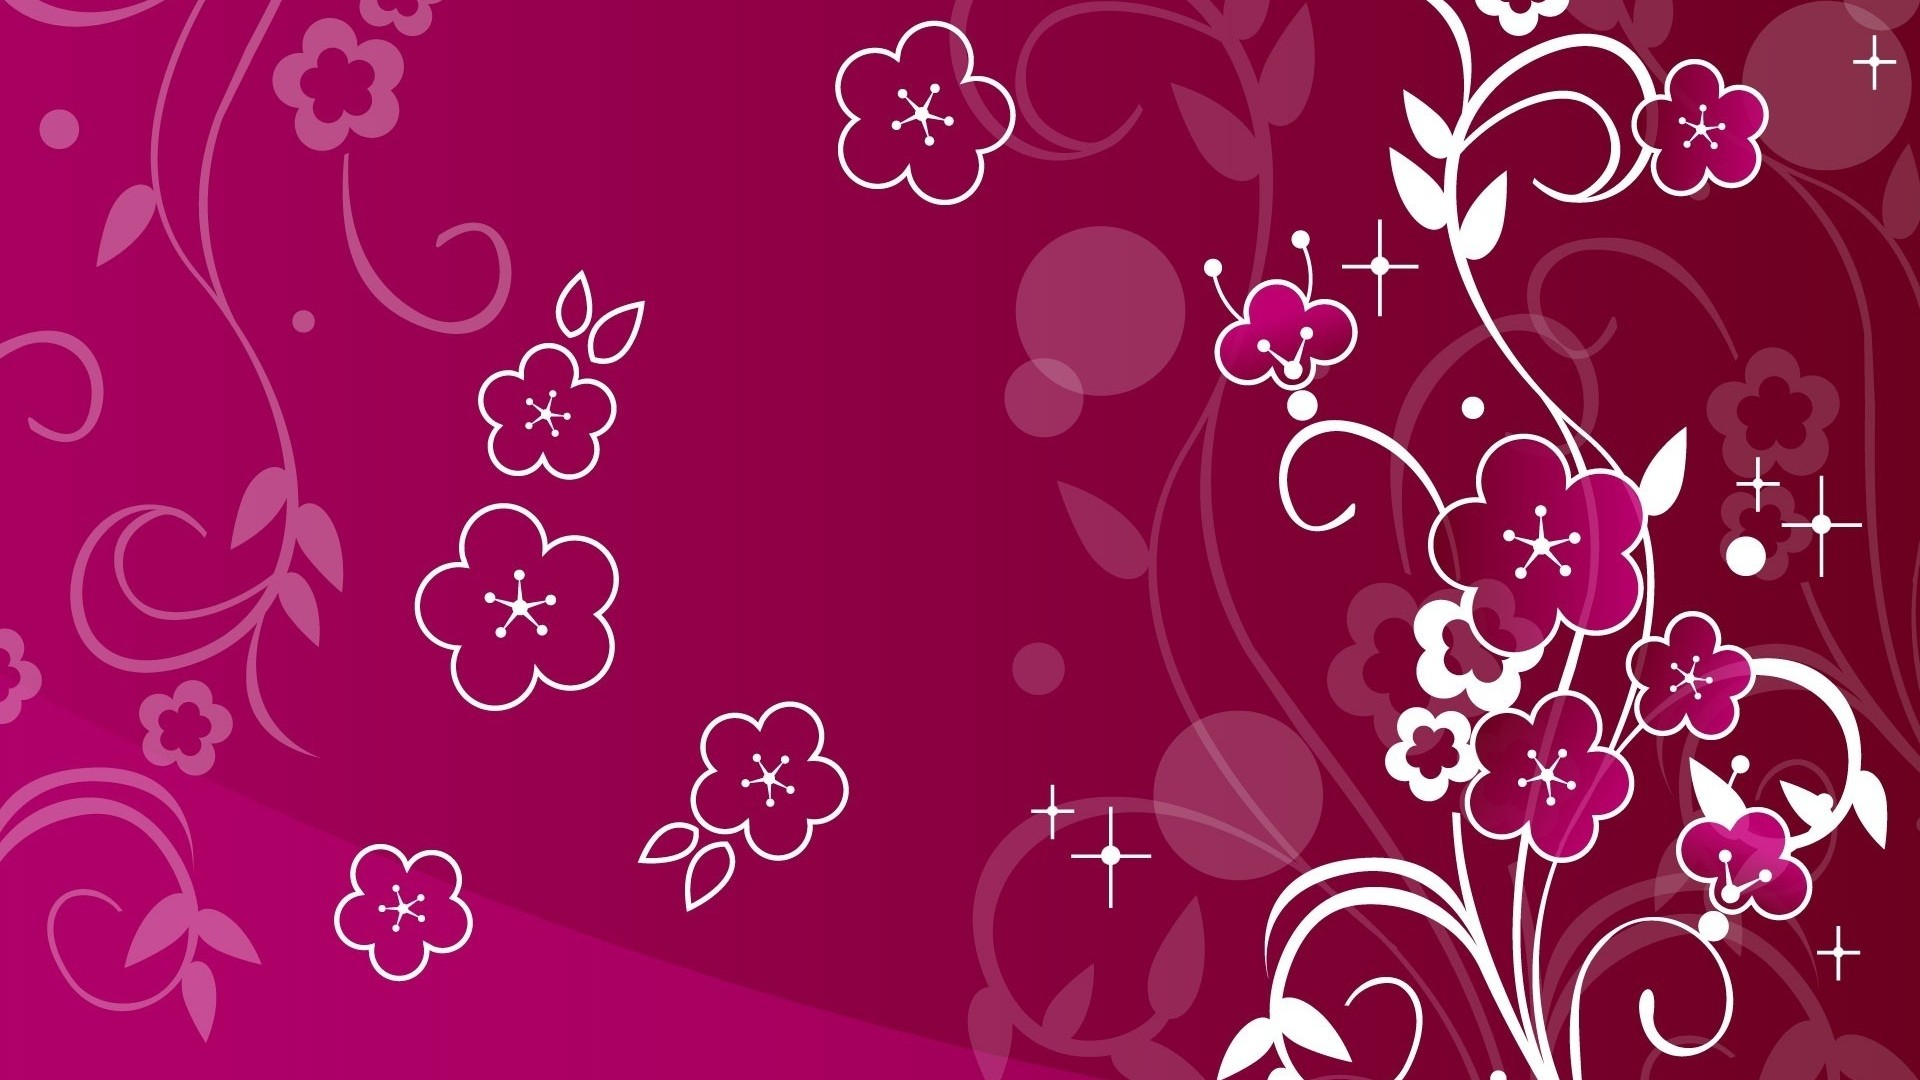 Pink Color 1080p Wallpapers Wallpaper High Definition High